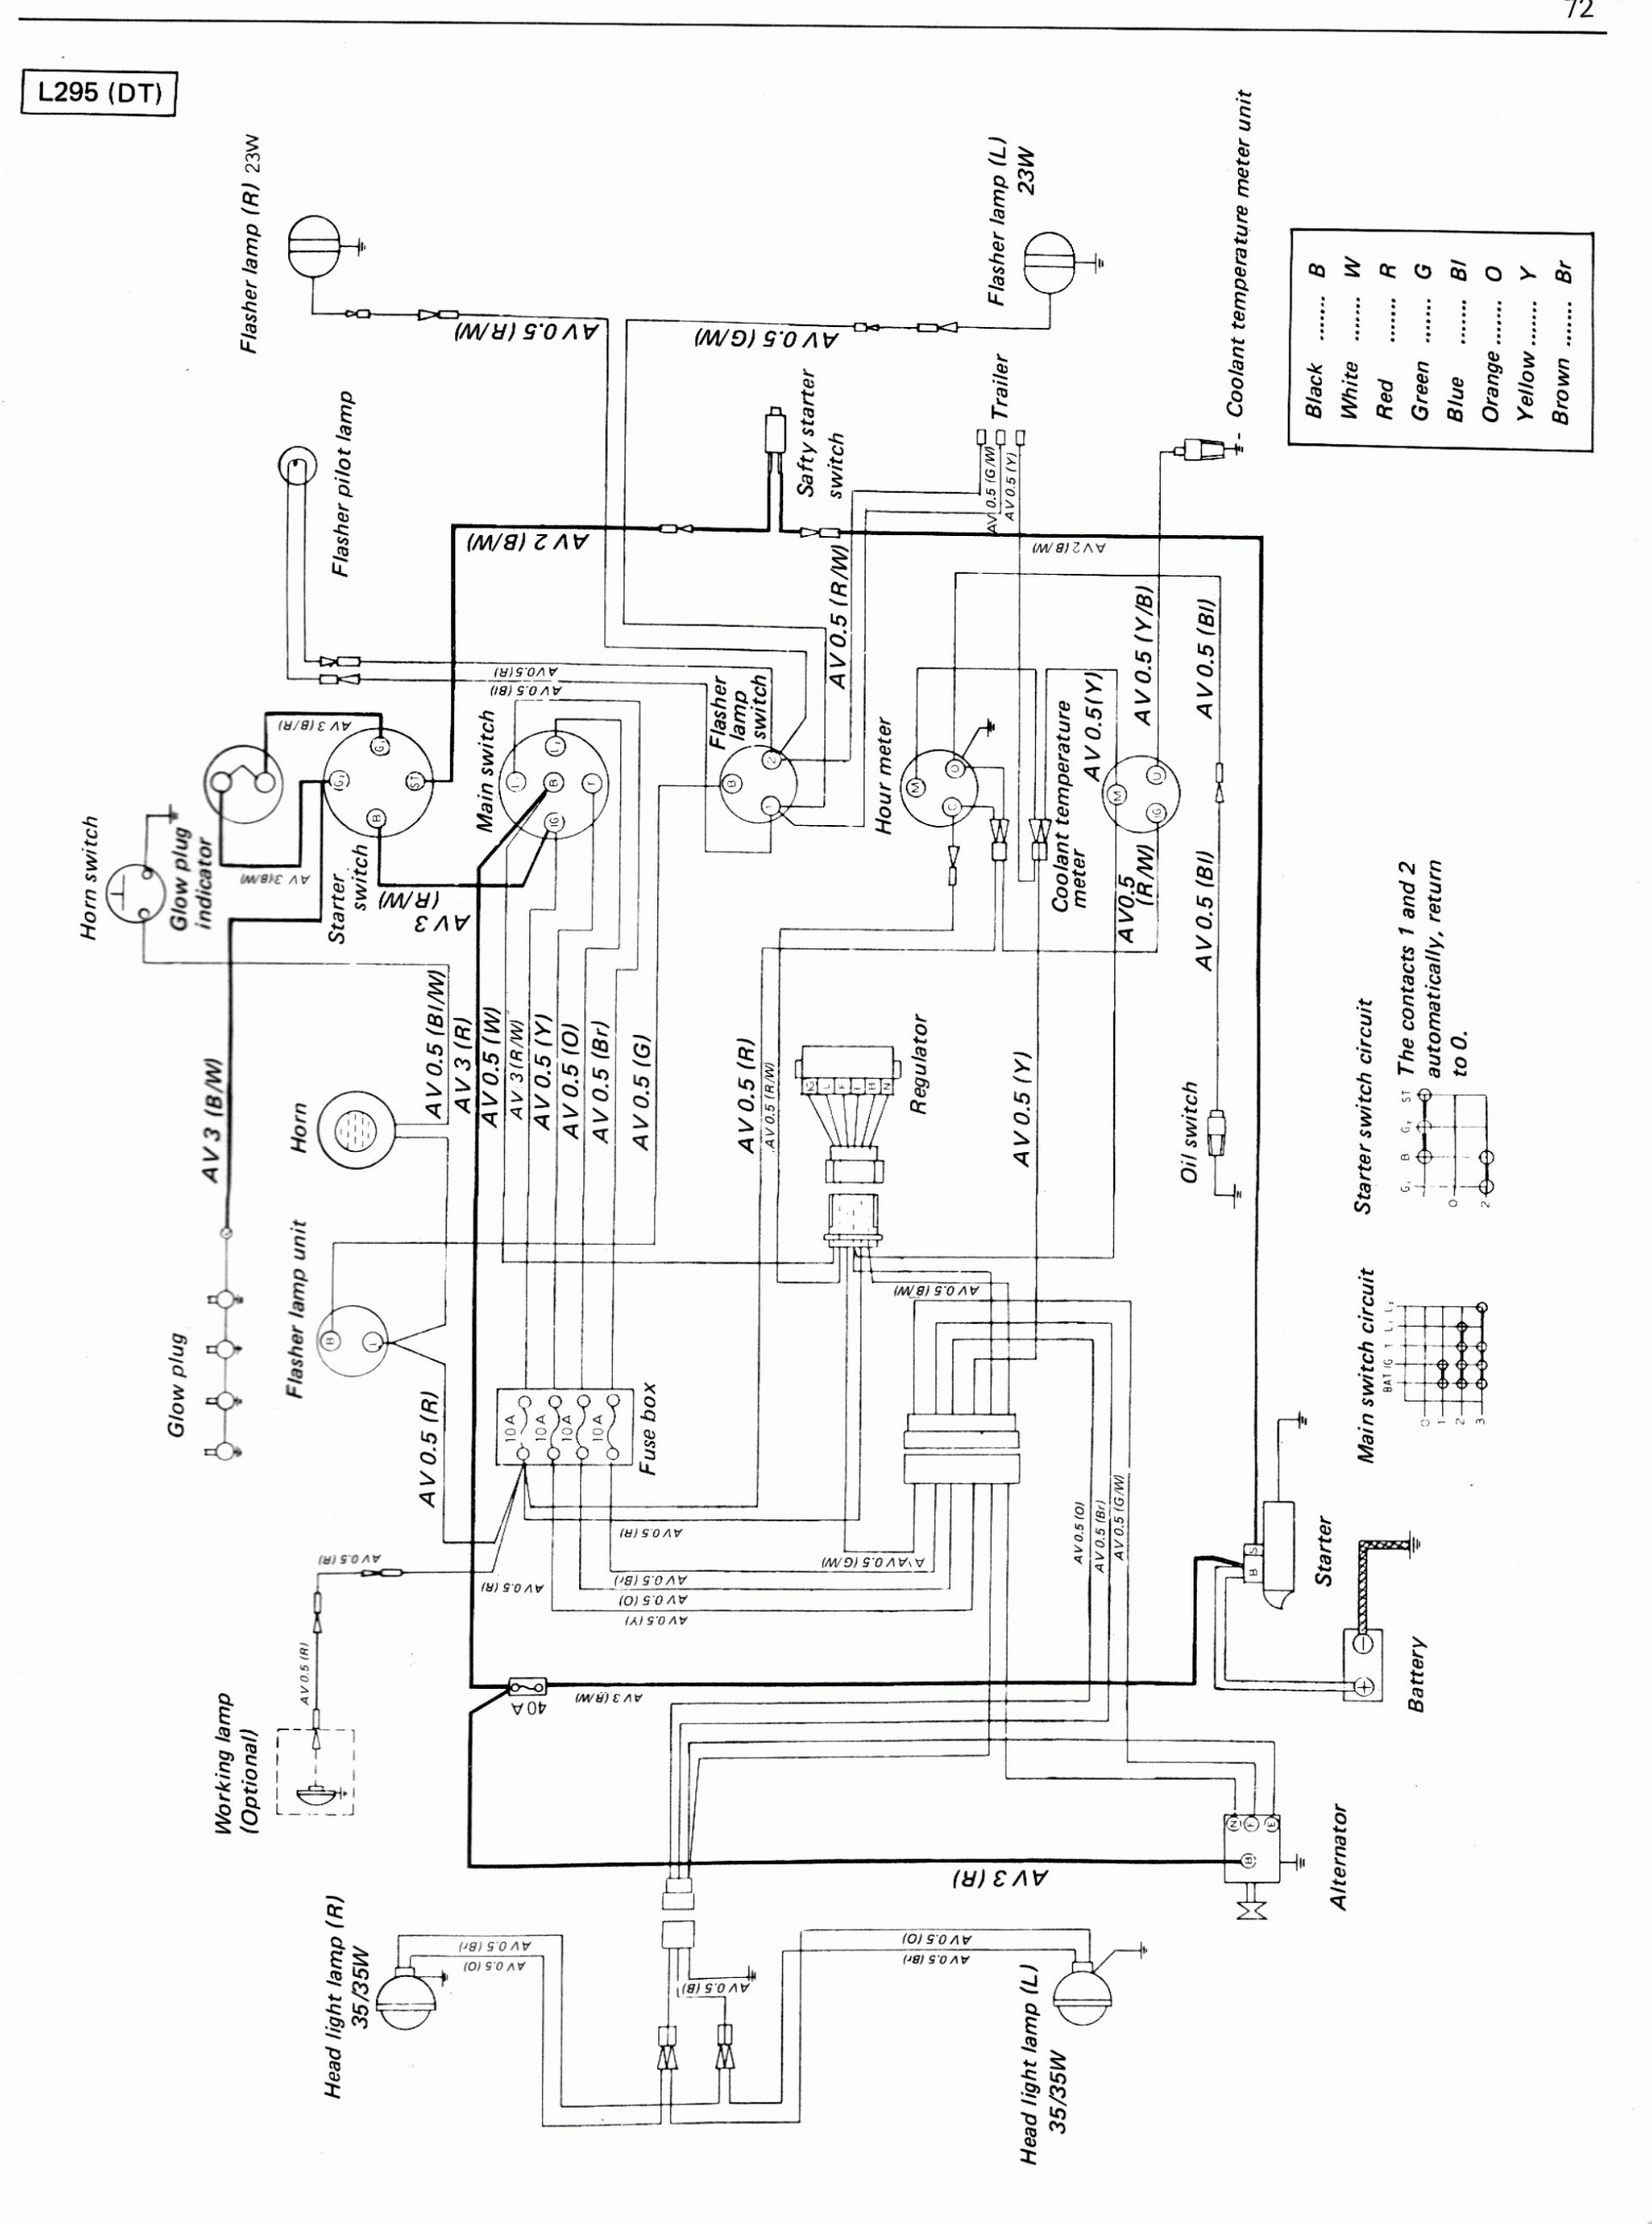 Get International Tractor Wiring Diagram Download